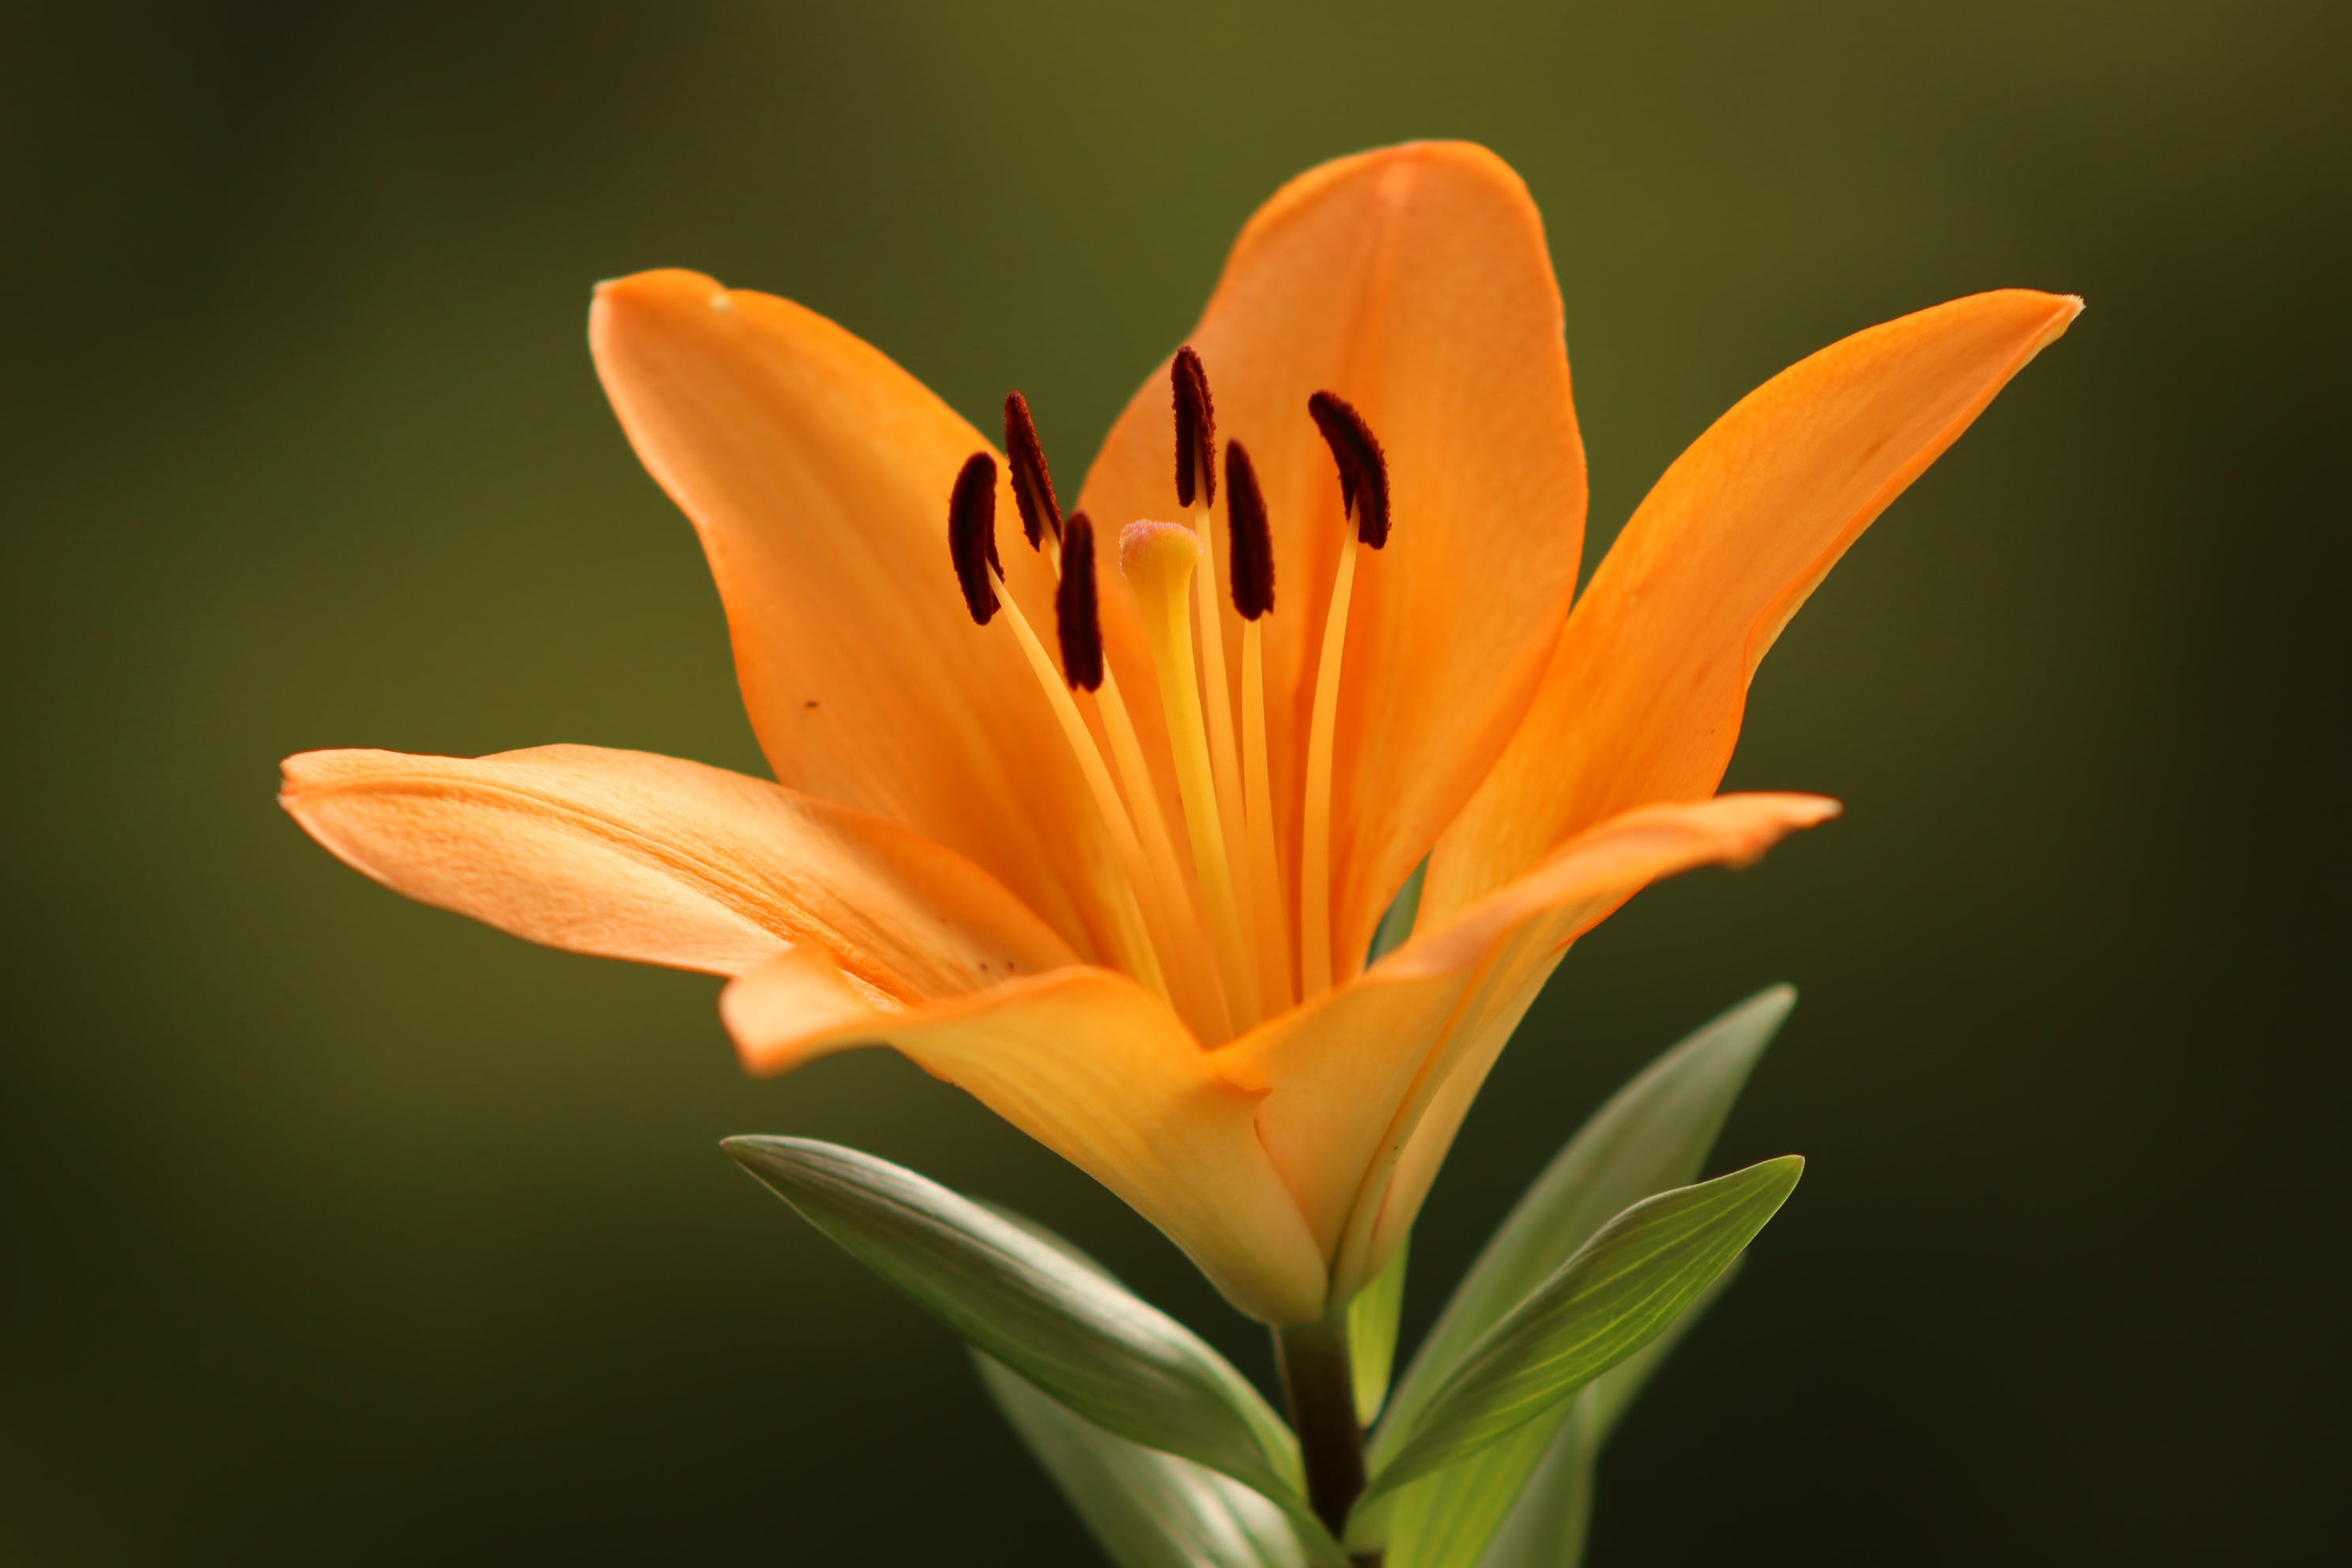 Orange Lily Flower in Bloom